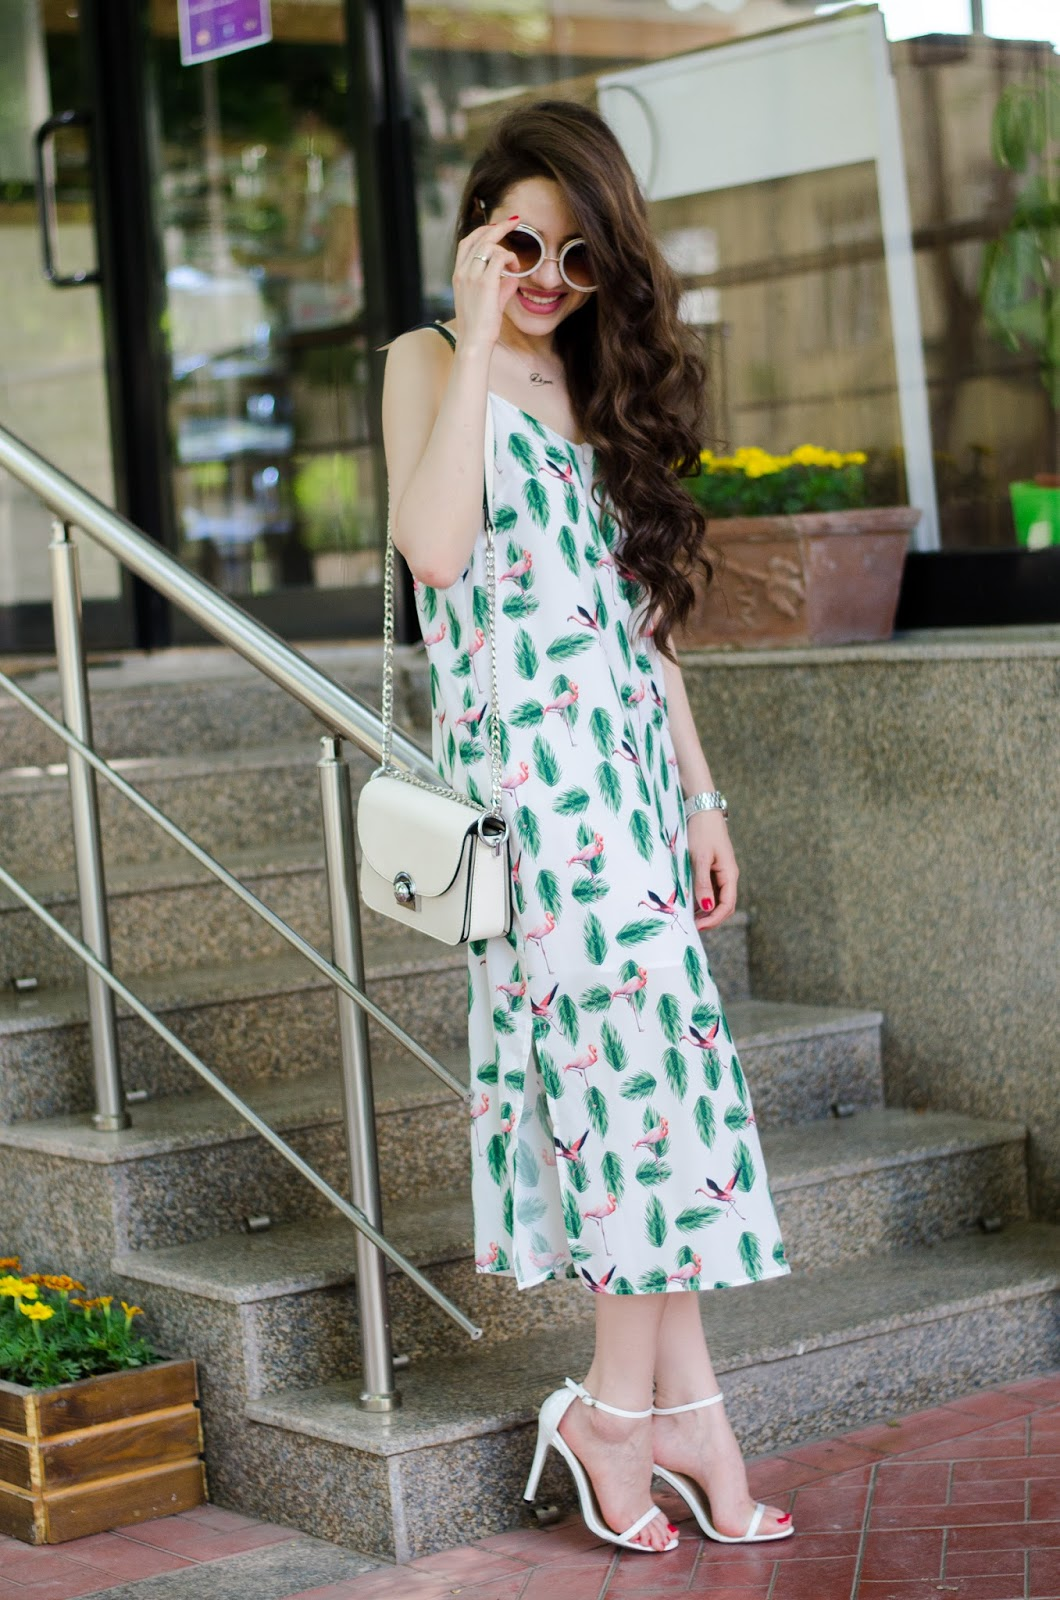 fashion blogger diyorasnotes diyora beta midi came dress white heels white bag streetstyle2017 spring outfit